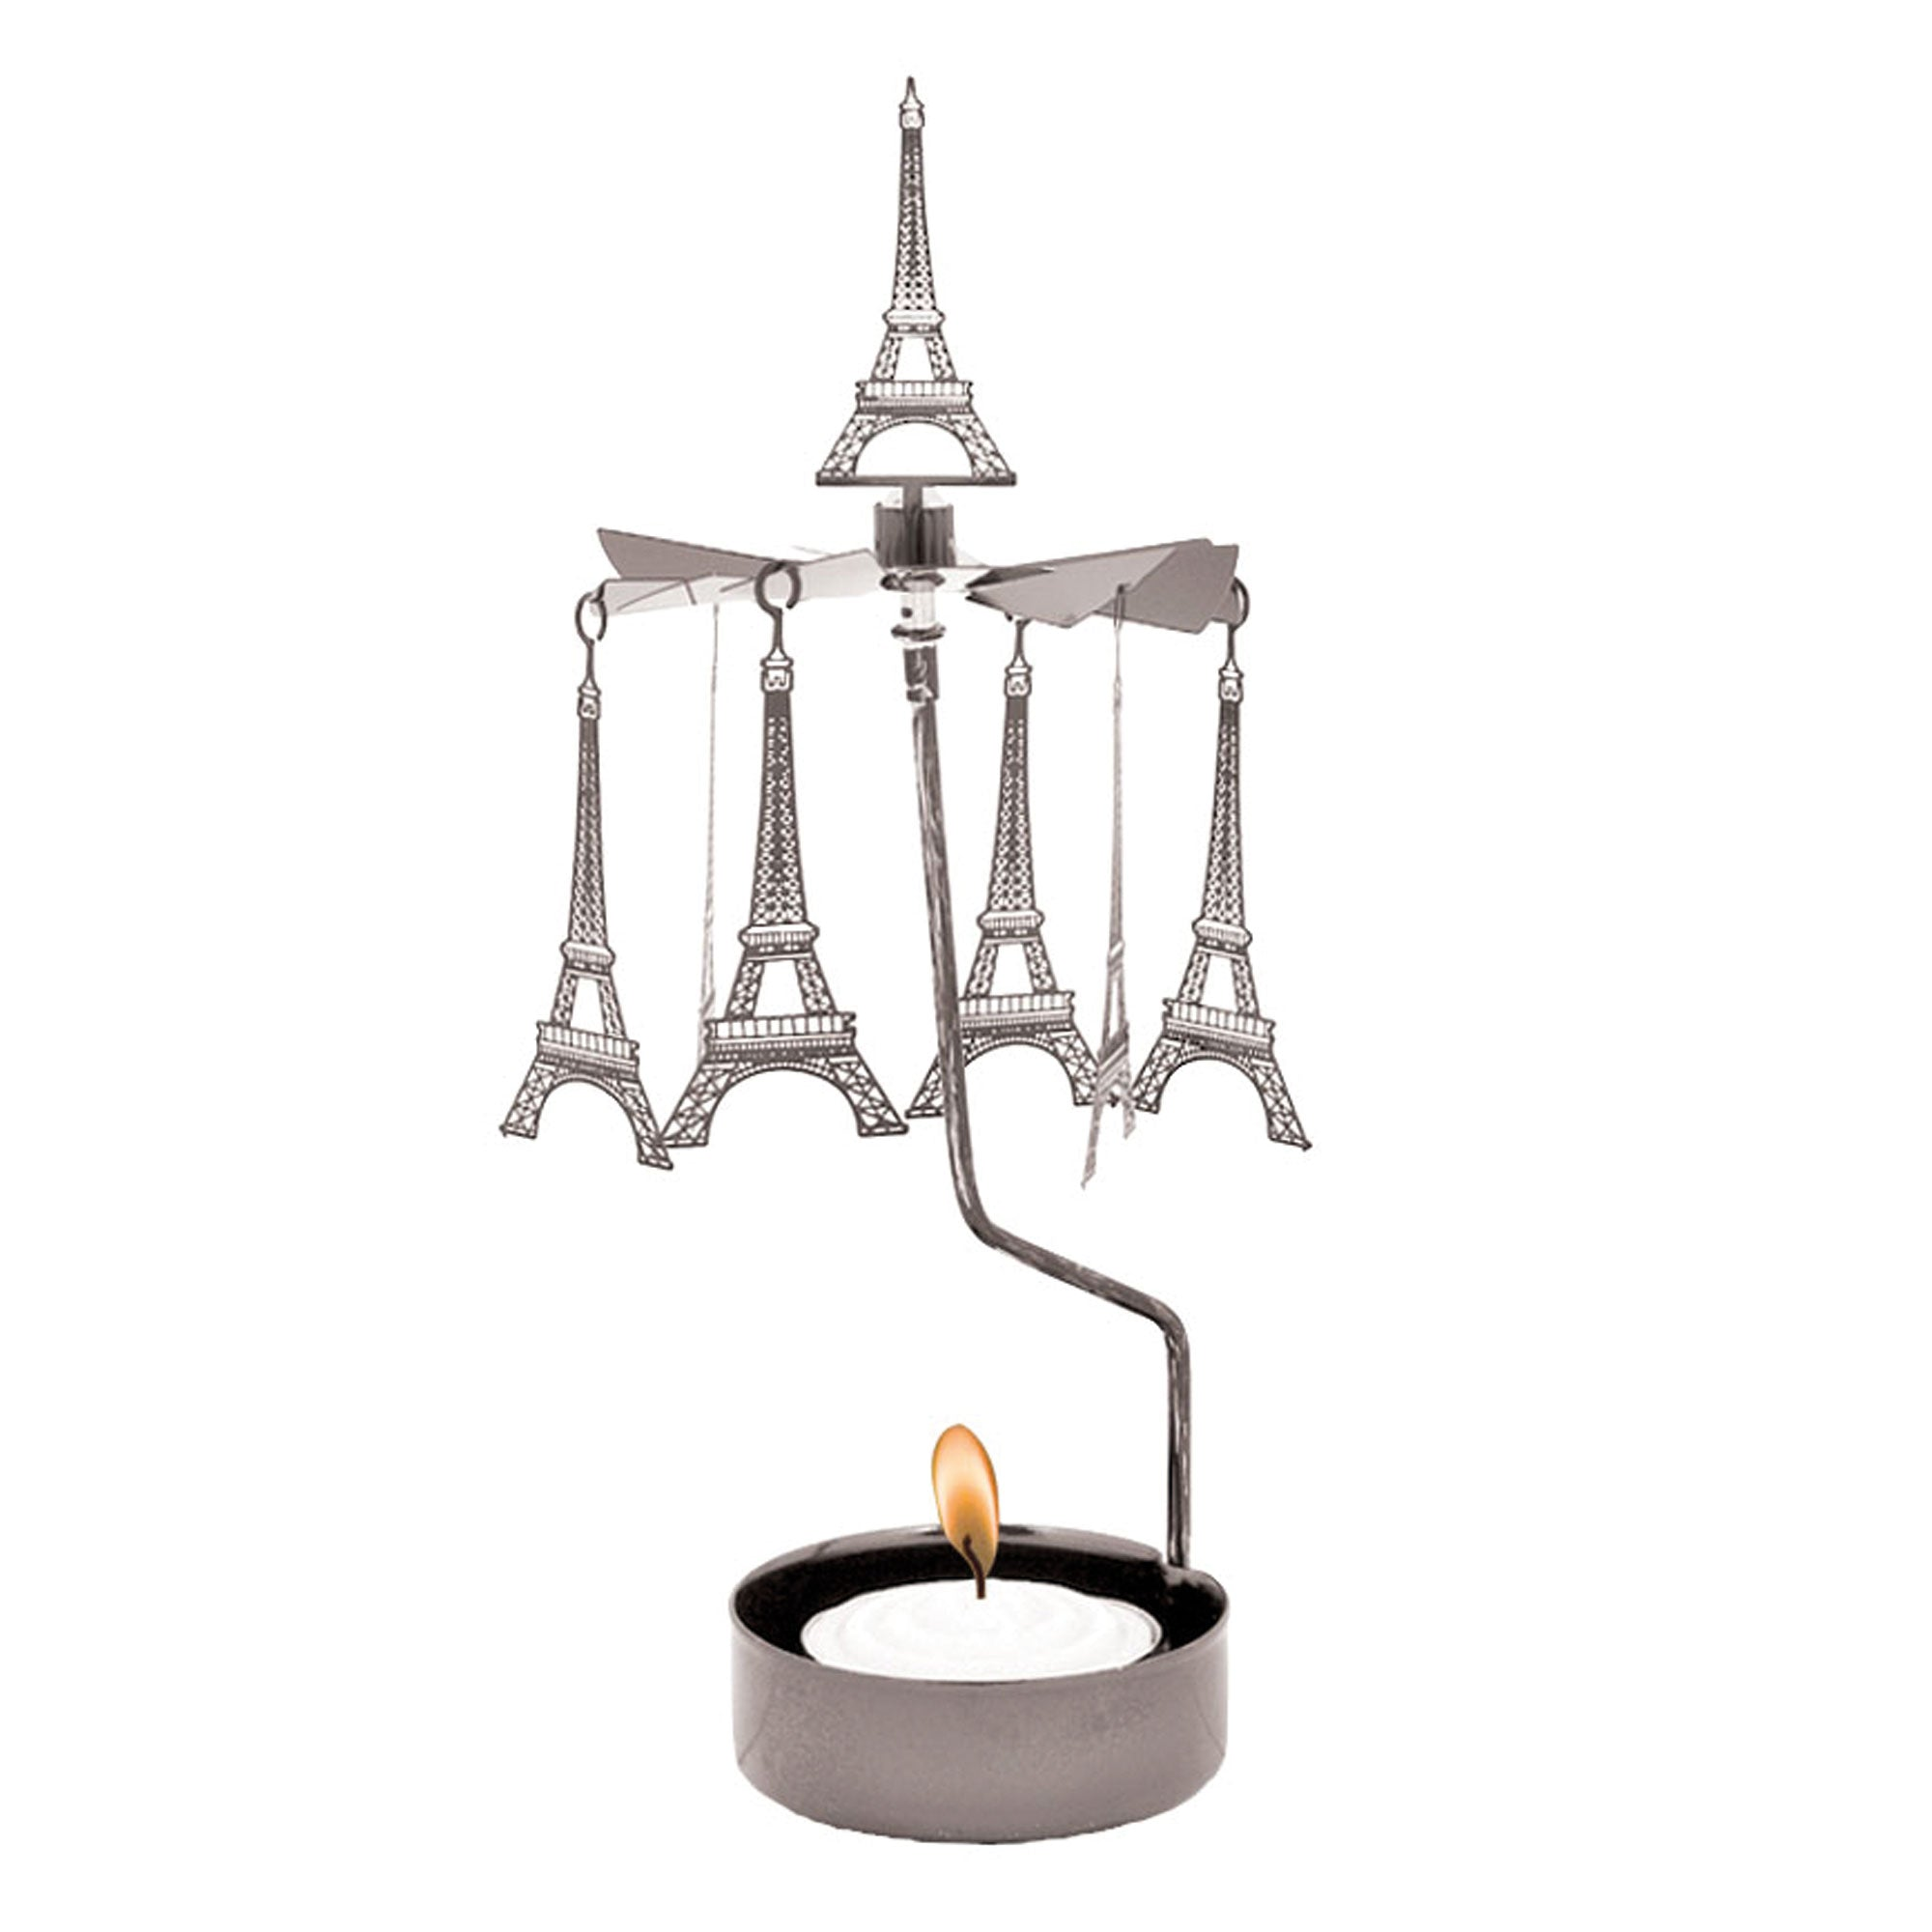 Eiffel Tower Rotary Candle Holder